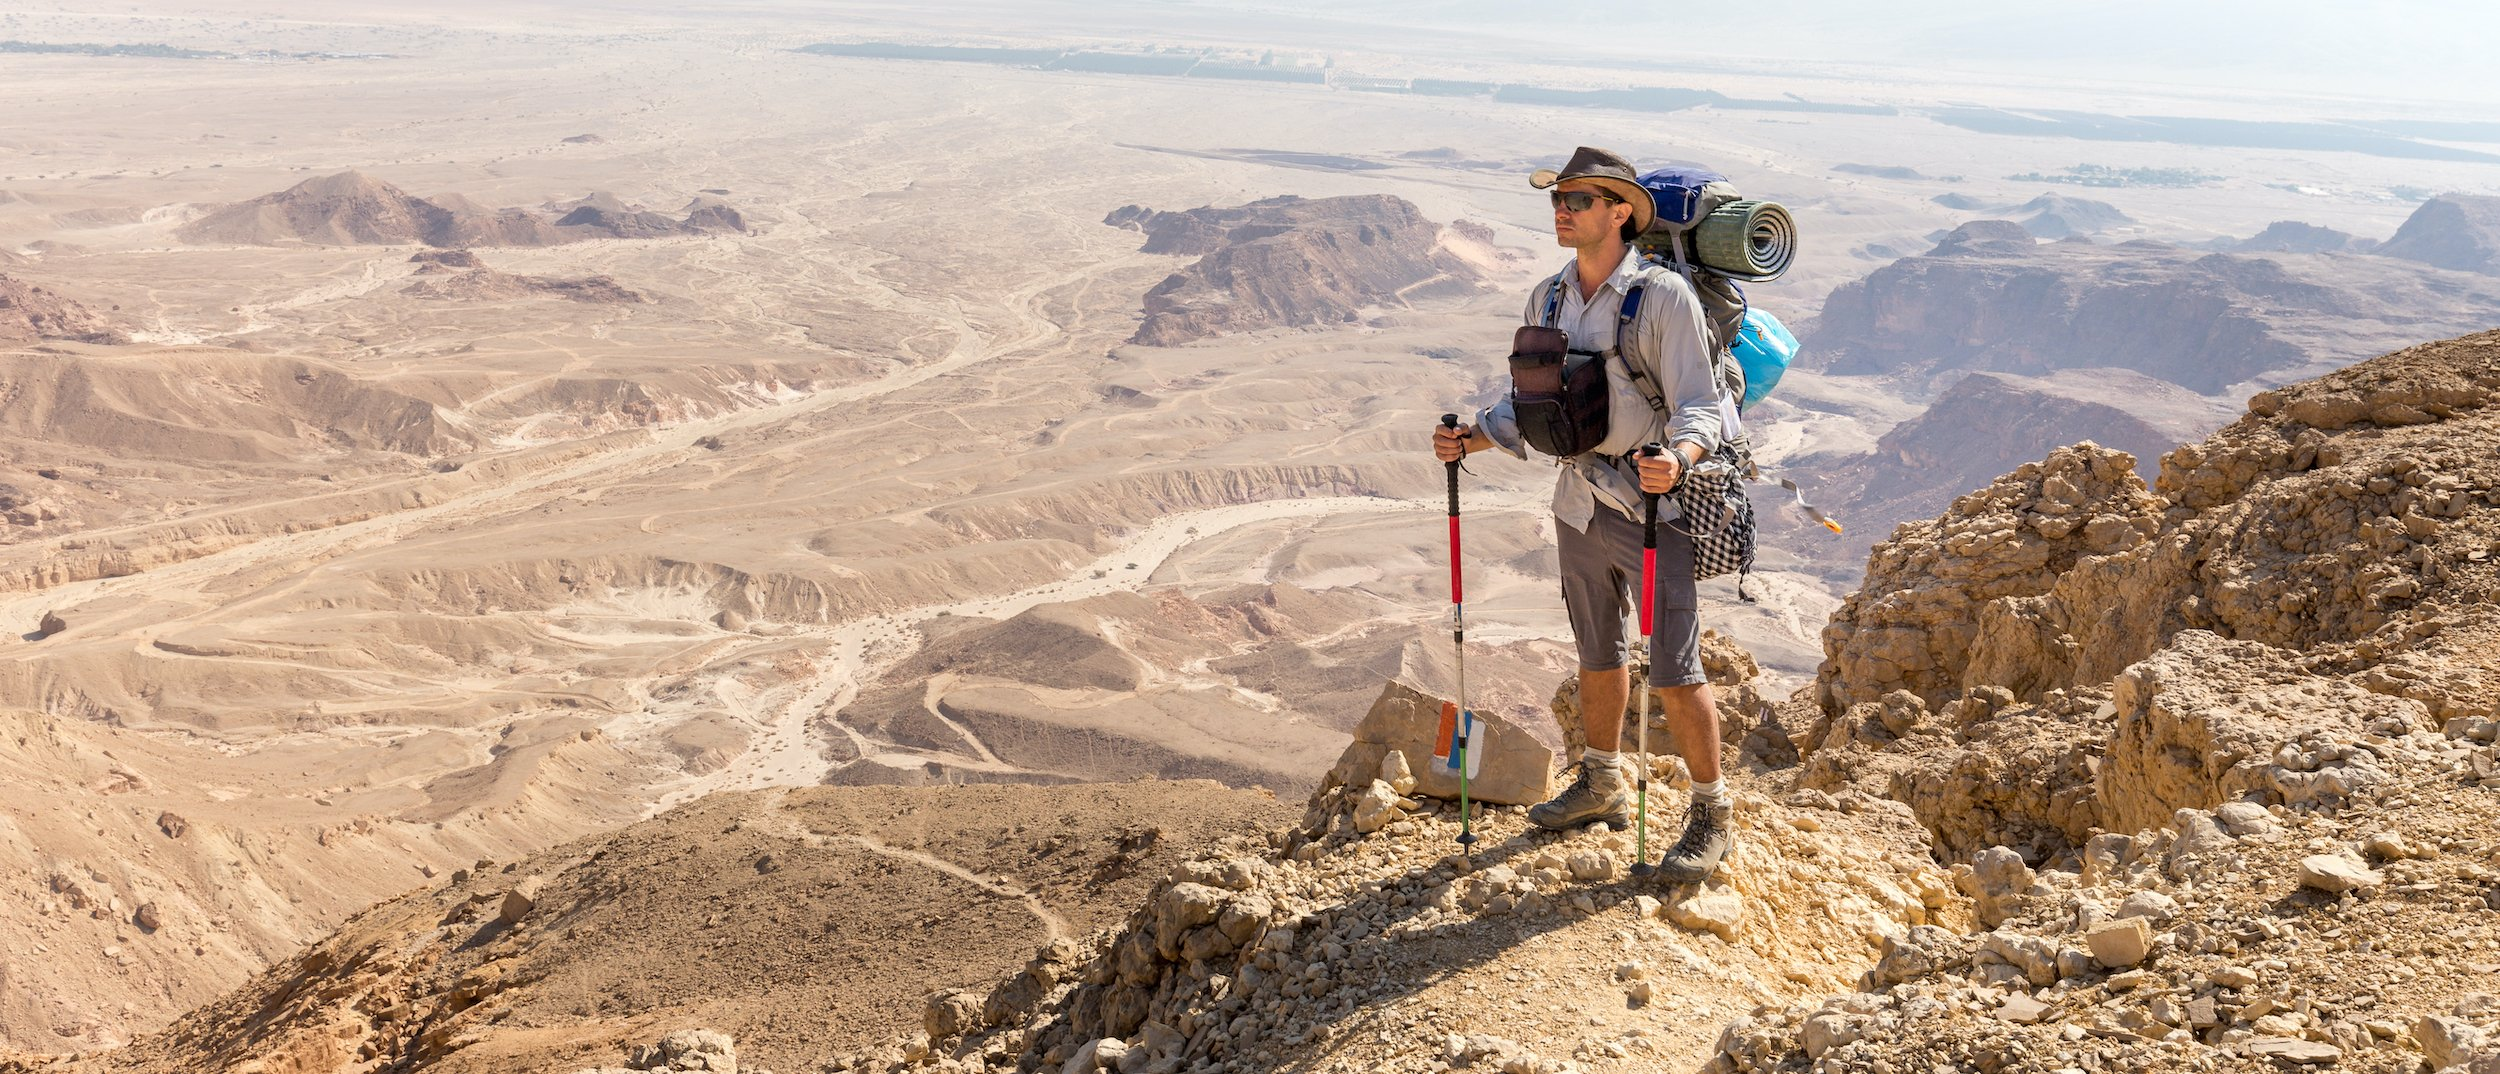 Hiking Tours In Israel.